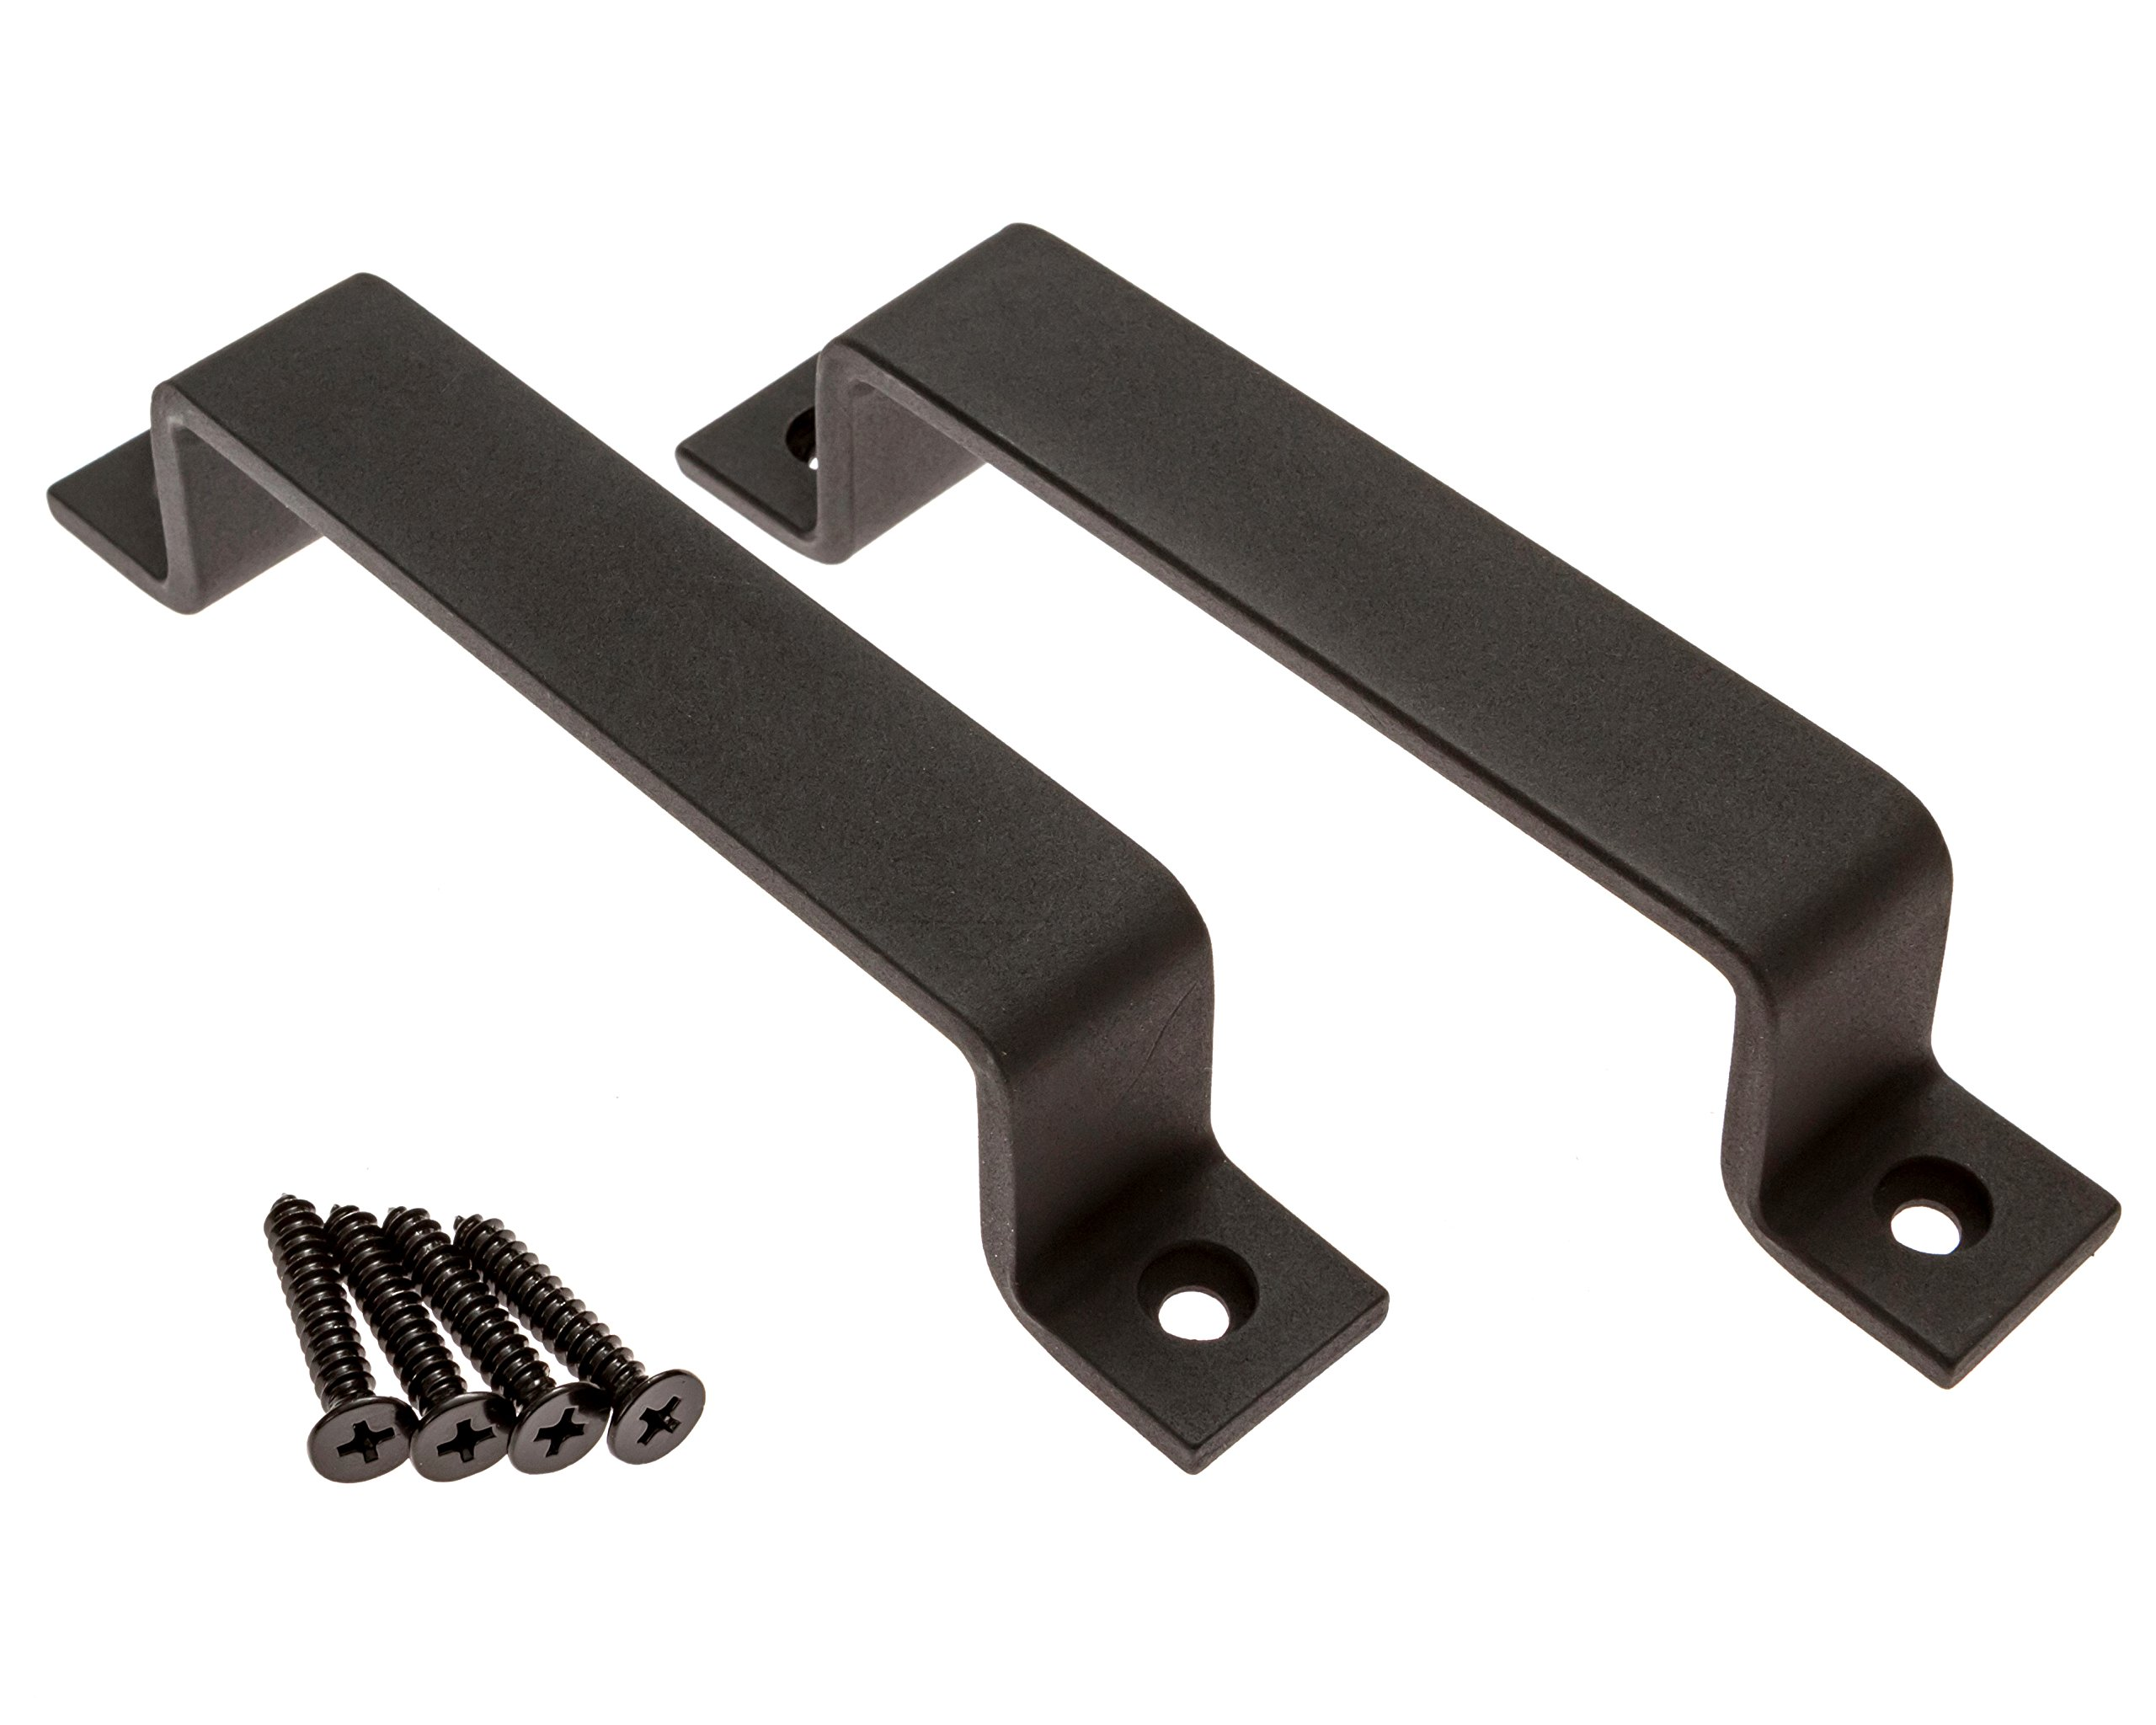 Sliding Barn Door Handle Pull Set | Black Steel or Stainless Steel | Screws Included